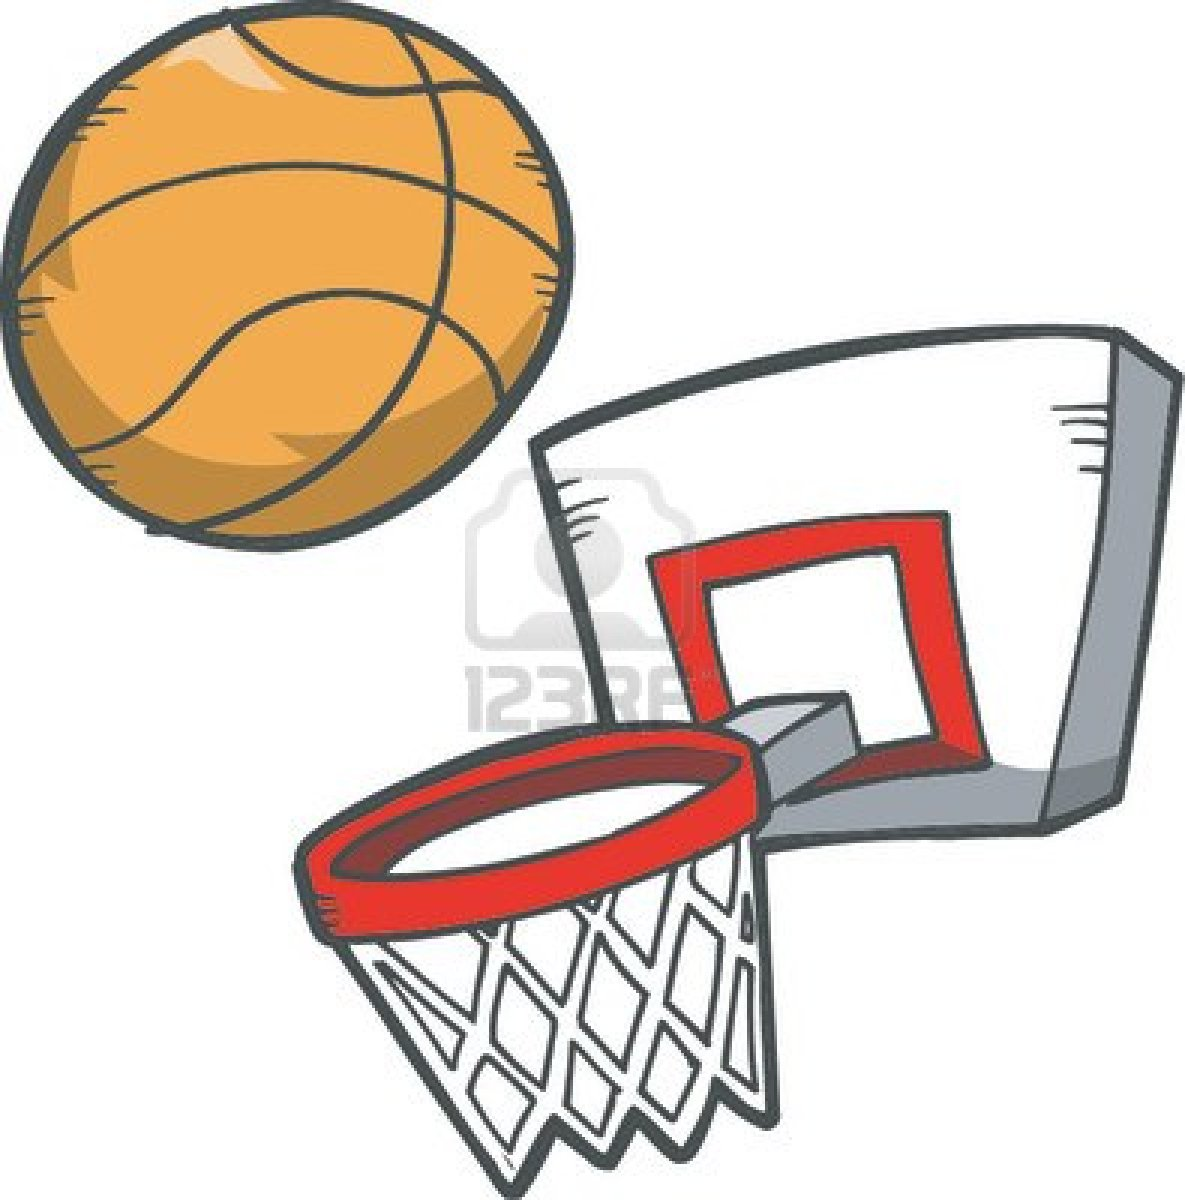 1185x1200 Basketball Hoop Clipart Many Interesting Cliparts